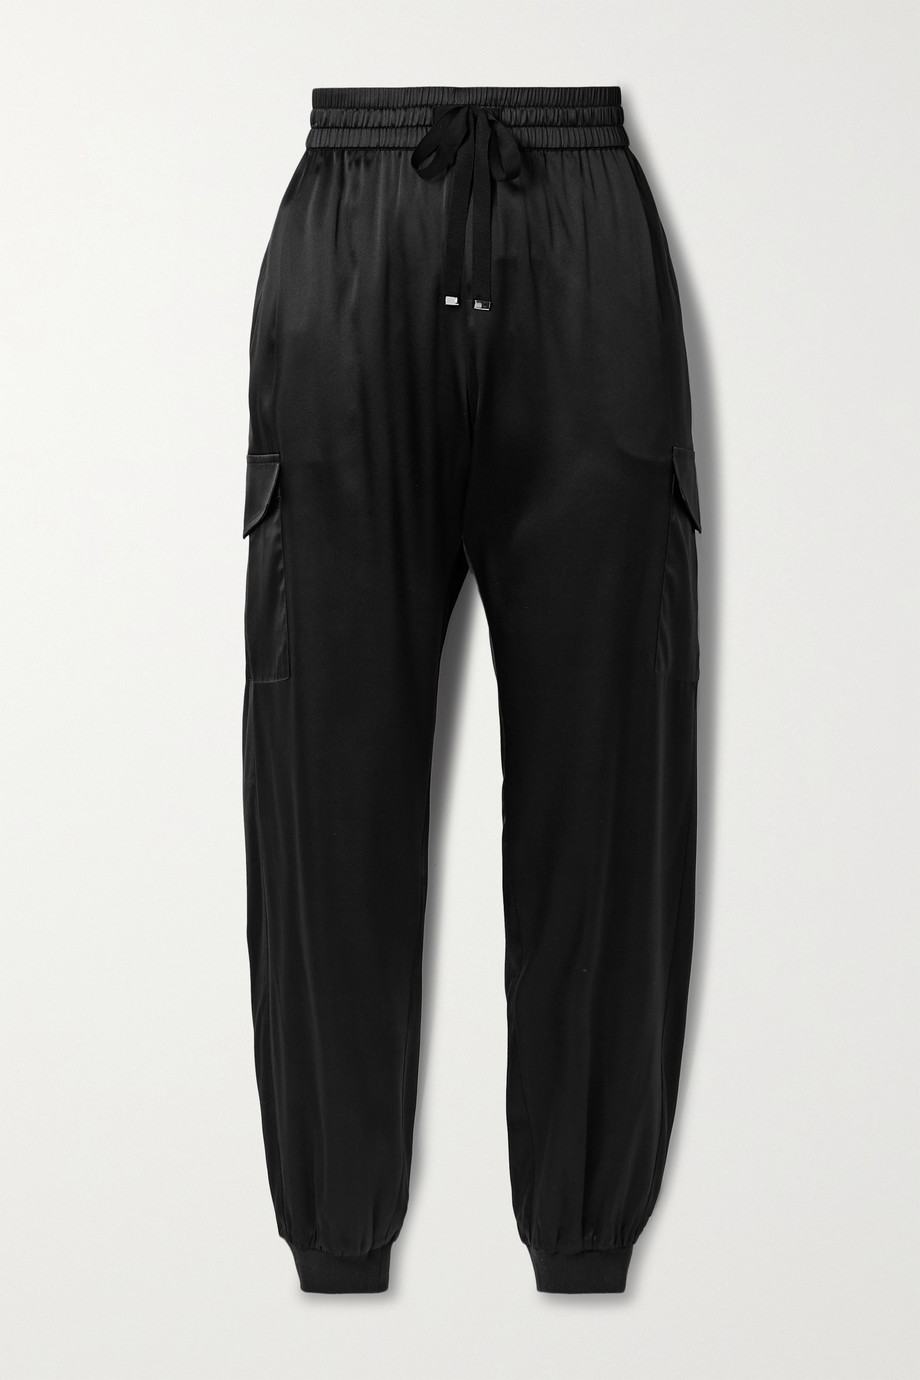 CAMI NYC The Elsie silk-blend charmeuse track pants